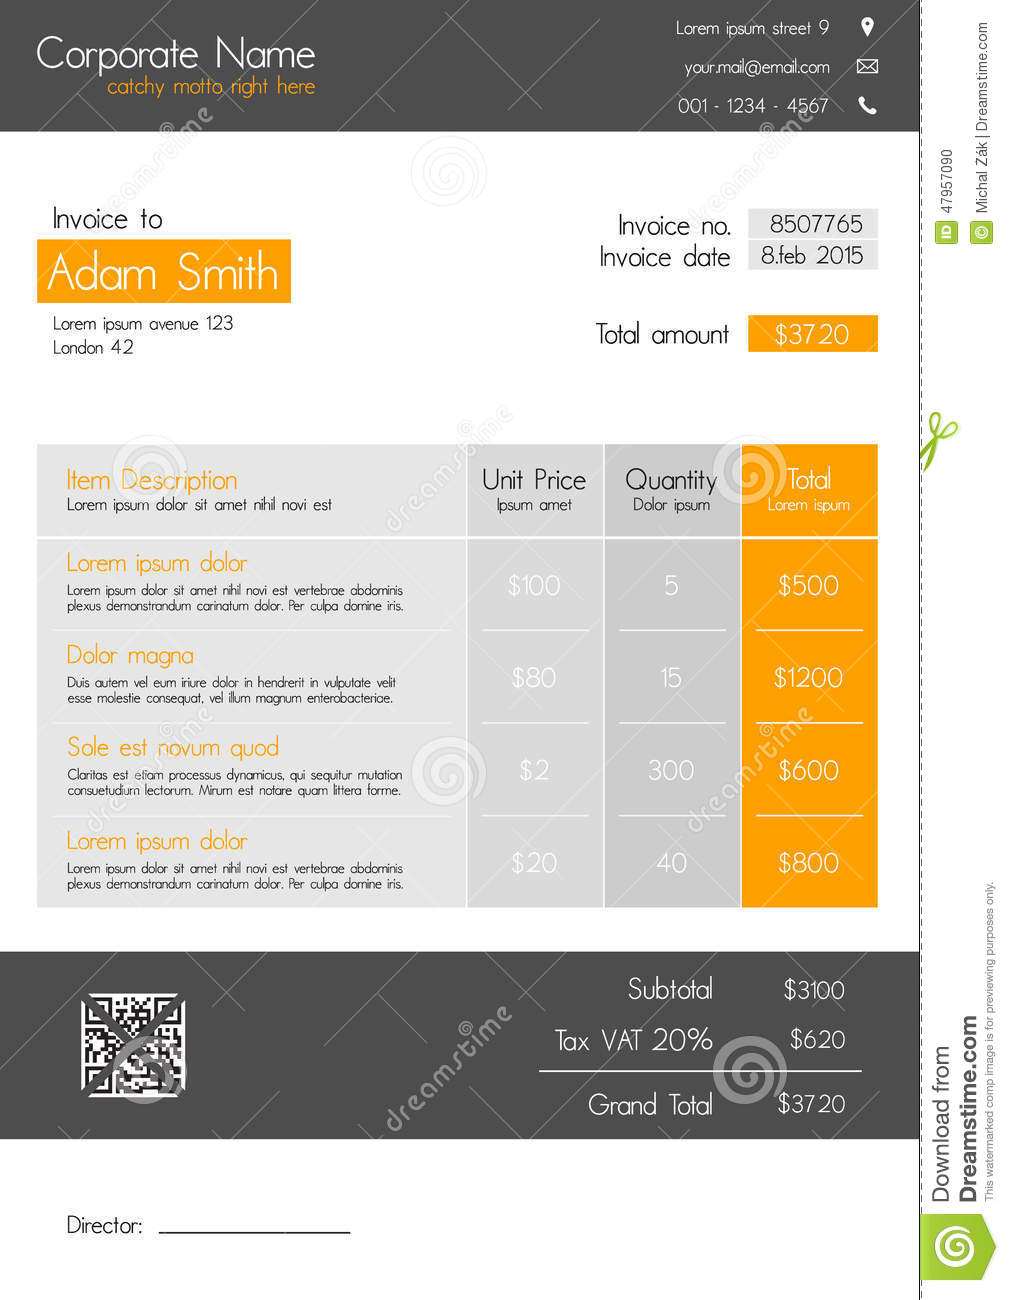 Invoice Template Clean Modern Style Of Orange And Grey